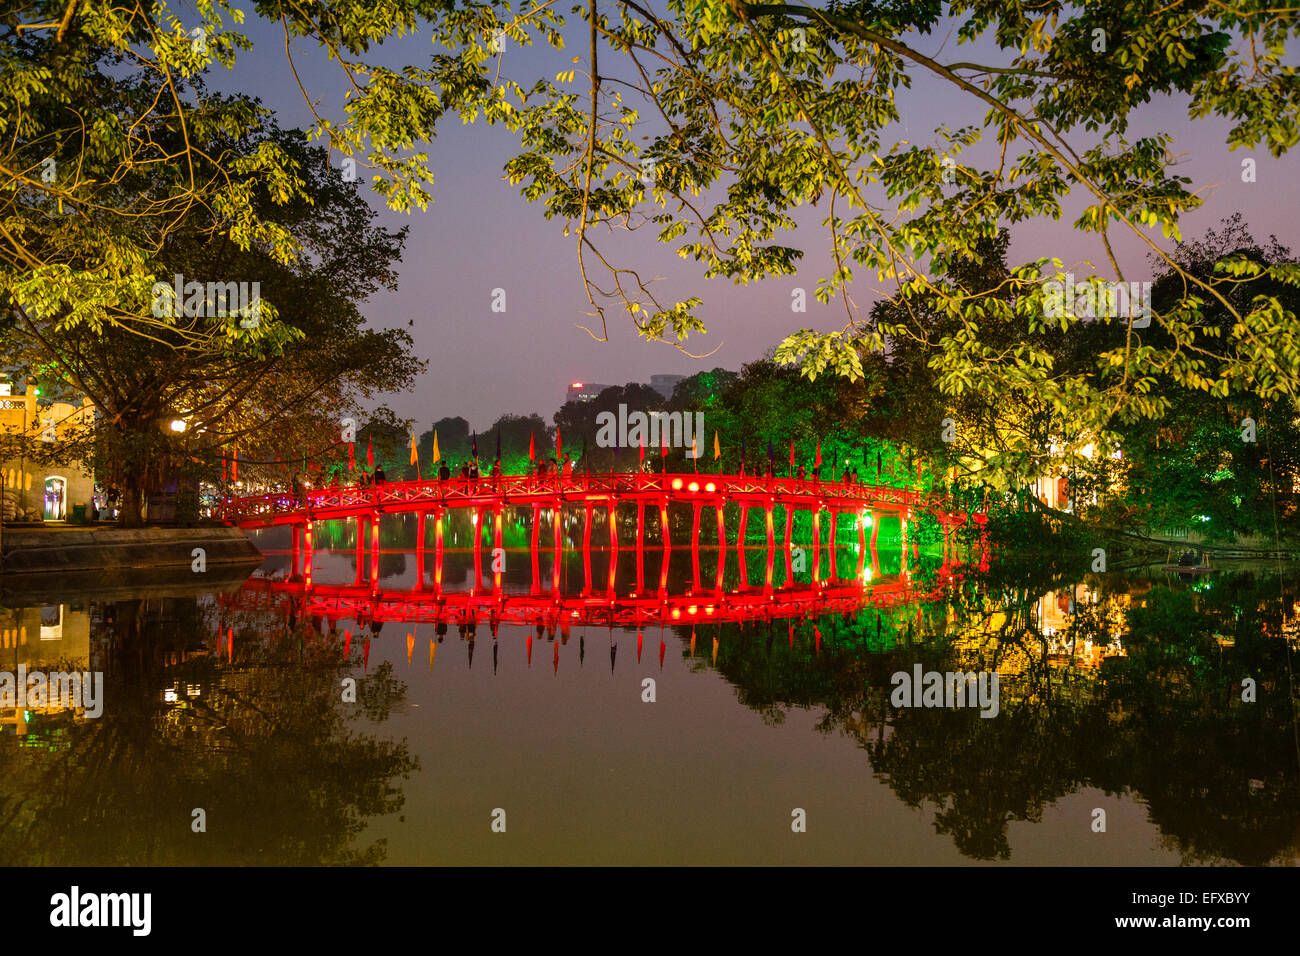 Hoan Kiem Lake in the old quarter, Hanoi, Vietnam. - Stock Image